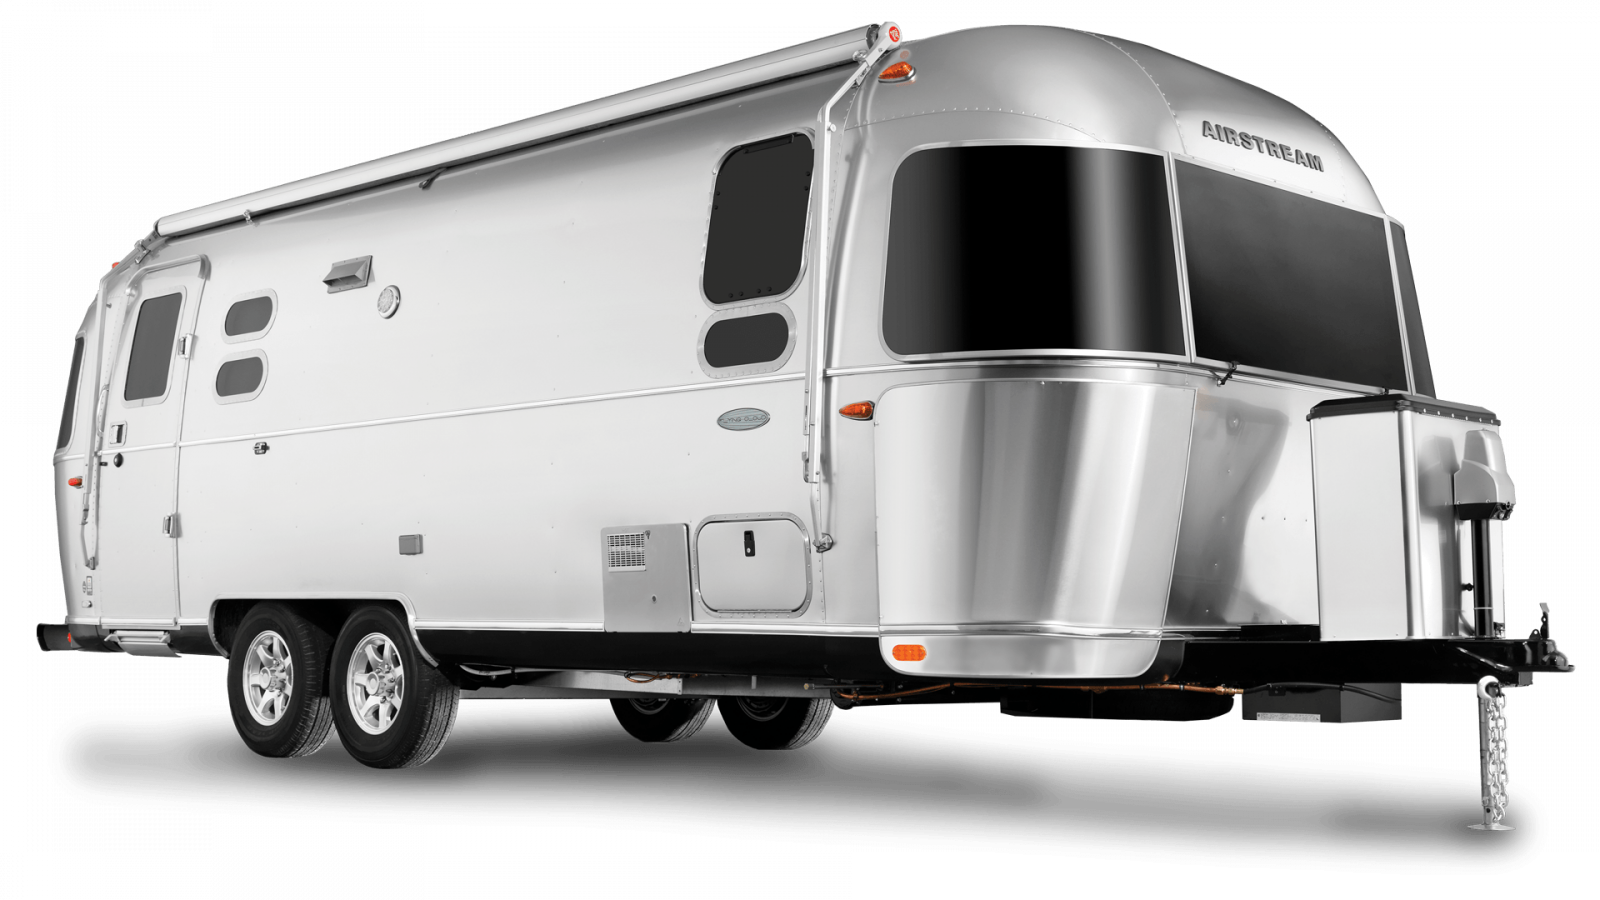 Airstream Travel Trailer >> Flying Cloud Travel Trailers Airstream